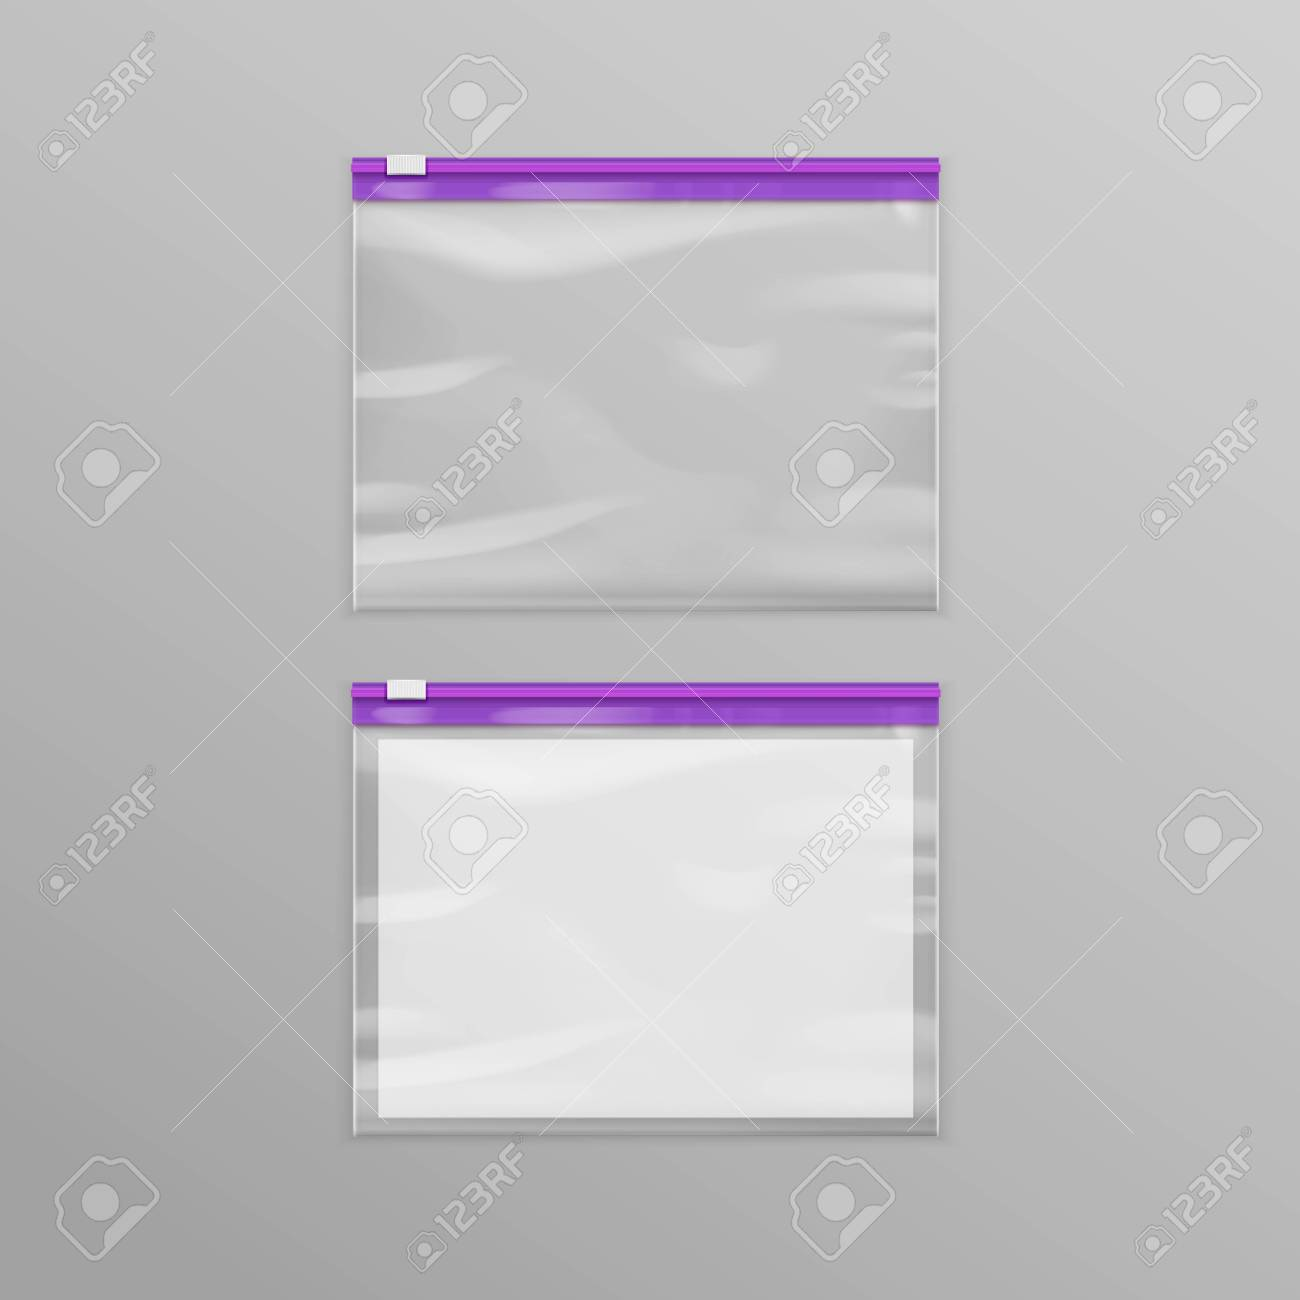 87ab8ac59b Vector - Vector Purple Sealed Empty Transparent Plastic Zipper Bags Close  up Isolated on Background